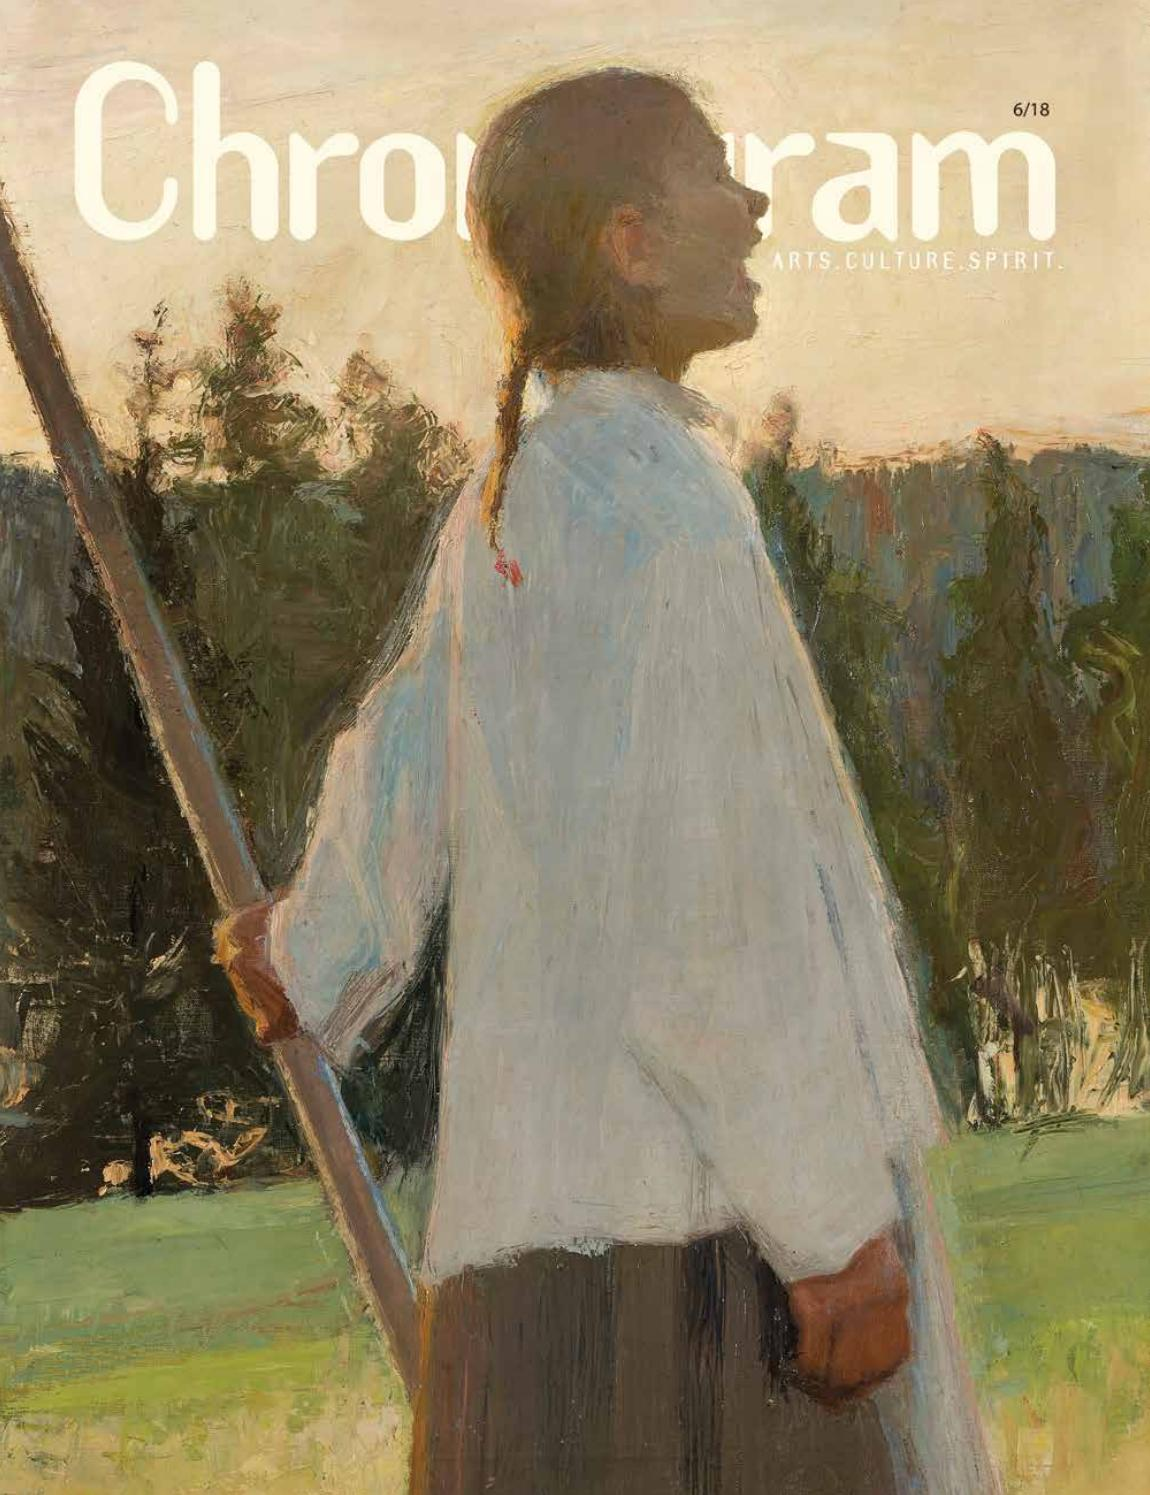 Chronogram June 2018 by Chronogram - issuu